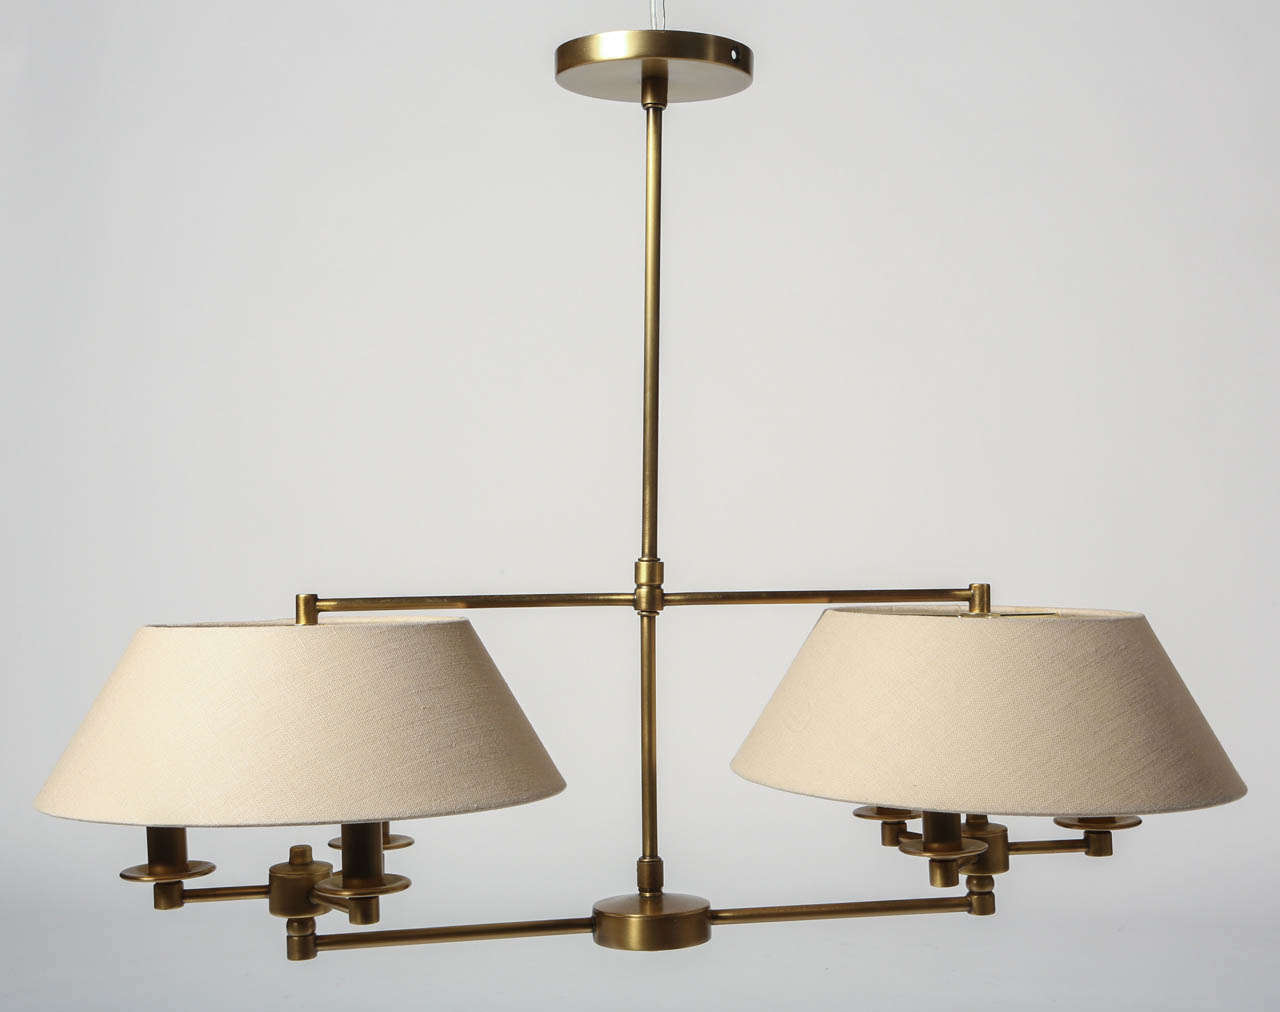 This Handmade Double Arm Pendant Is A Classically Styled Ceiling Light Fixture Finished In Antique